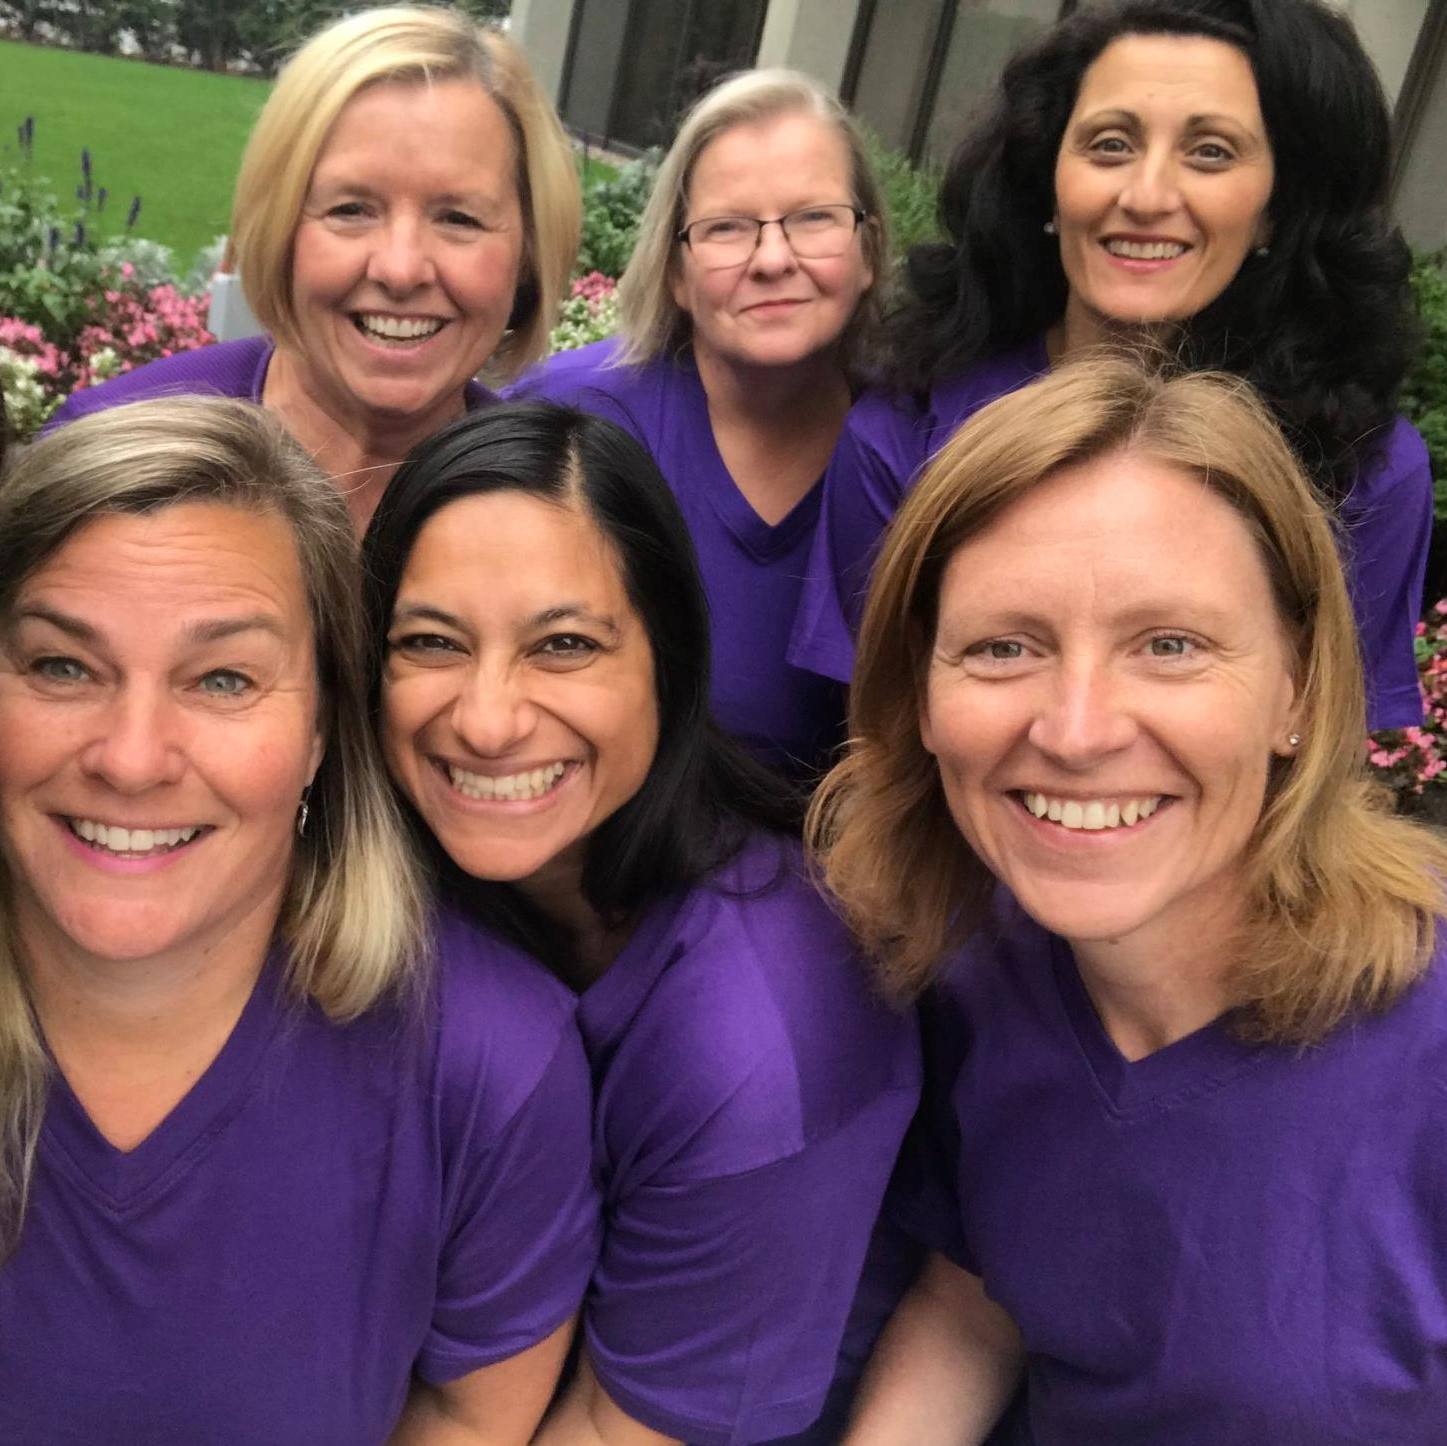 Food Allergy Canada team smiling for a photo.